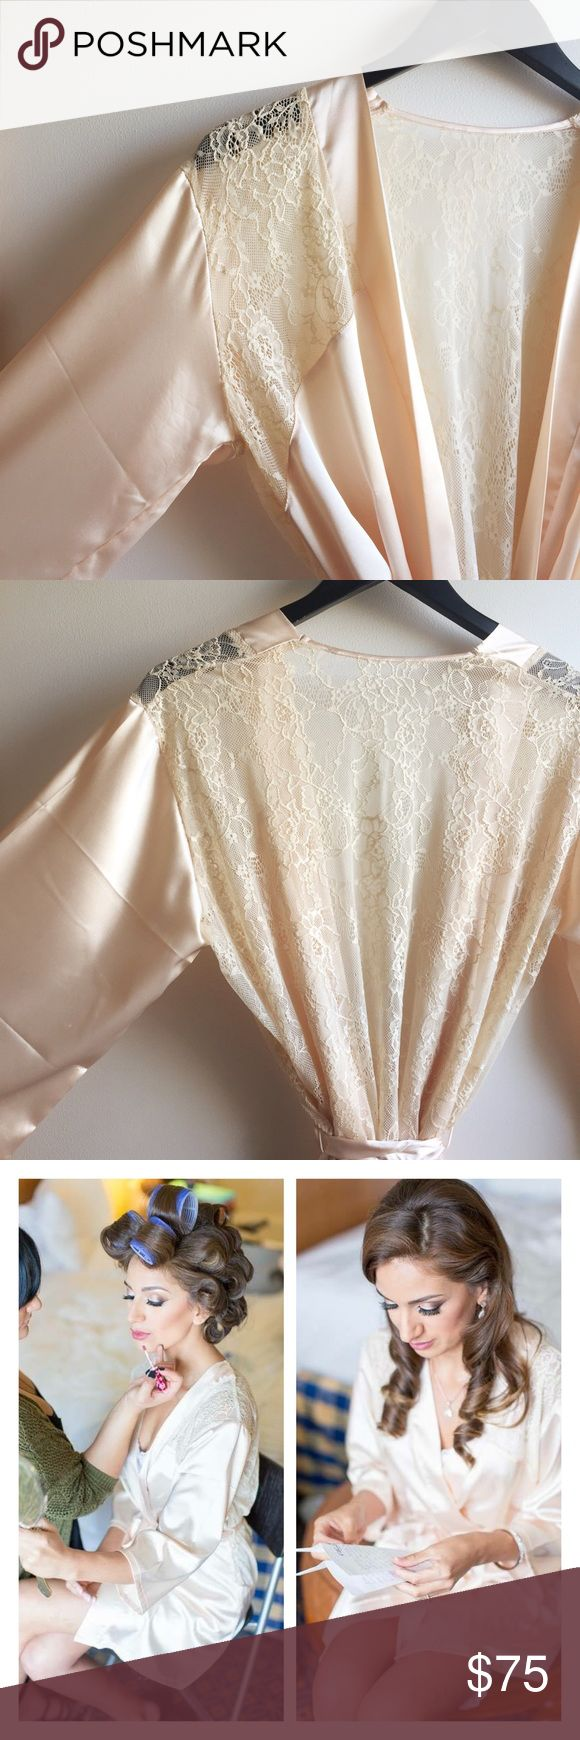 Anthropologie bridal robe Beautiful bridal robe worn once for an hour. Beautiful lace detail and stunning color! White beige color. Bought on BHLDN anthropologie's wedding line. Anthropologie Intimates & Sleepwear Robes